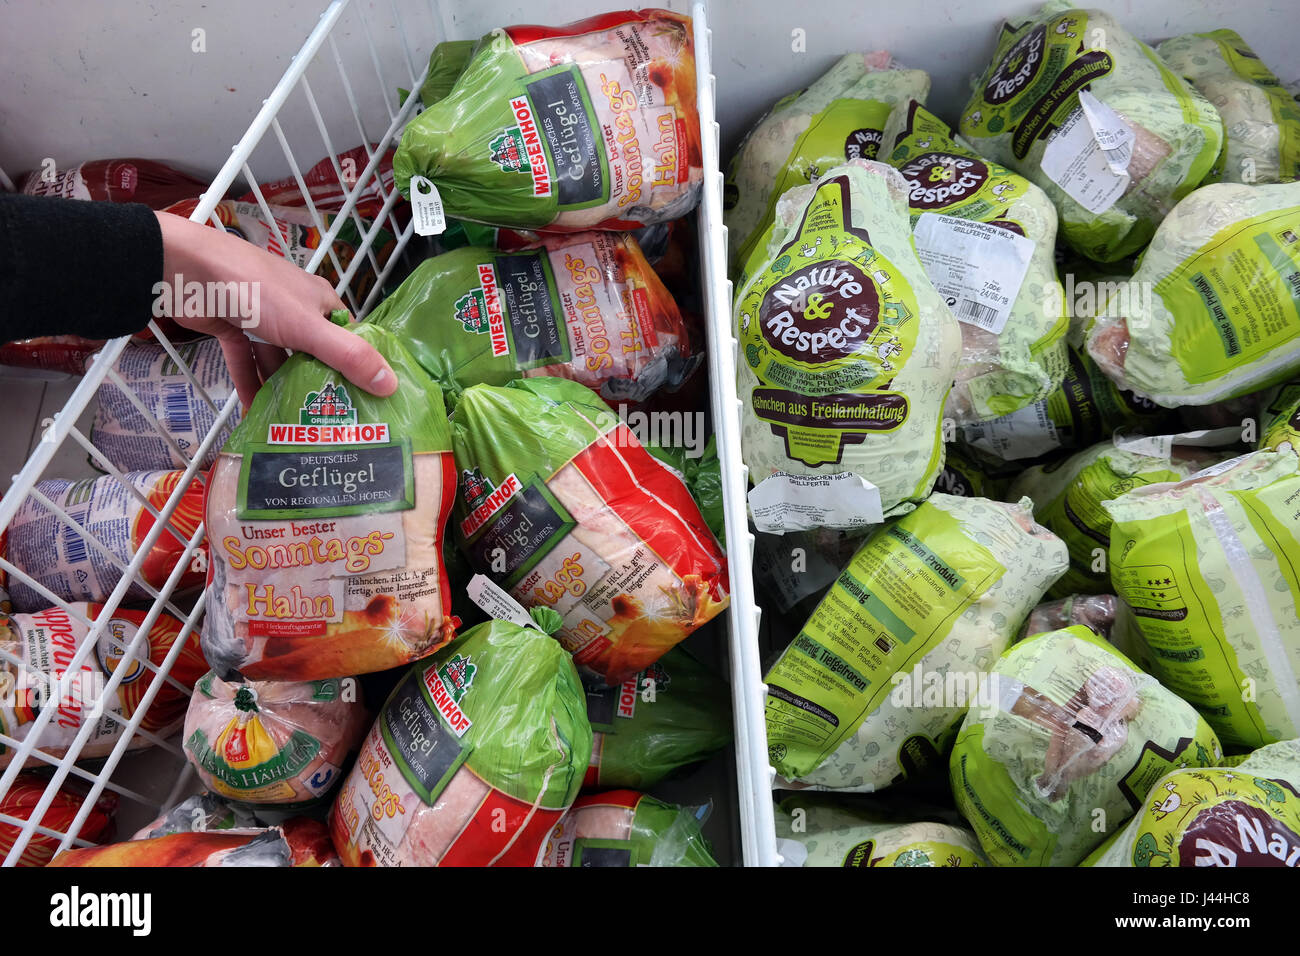 Poultry, deep frozen chicken packings in a supermarket - Stock Image